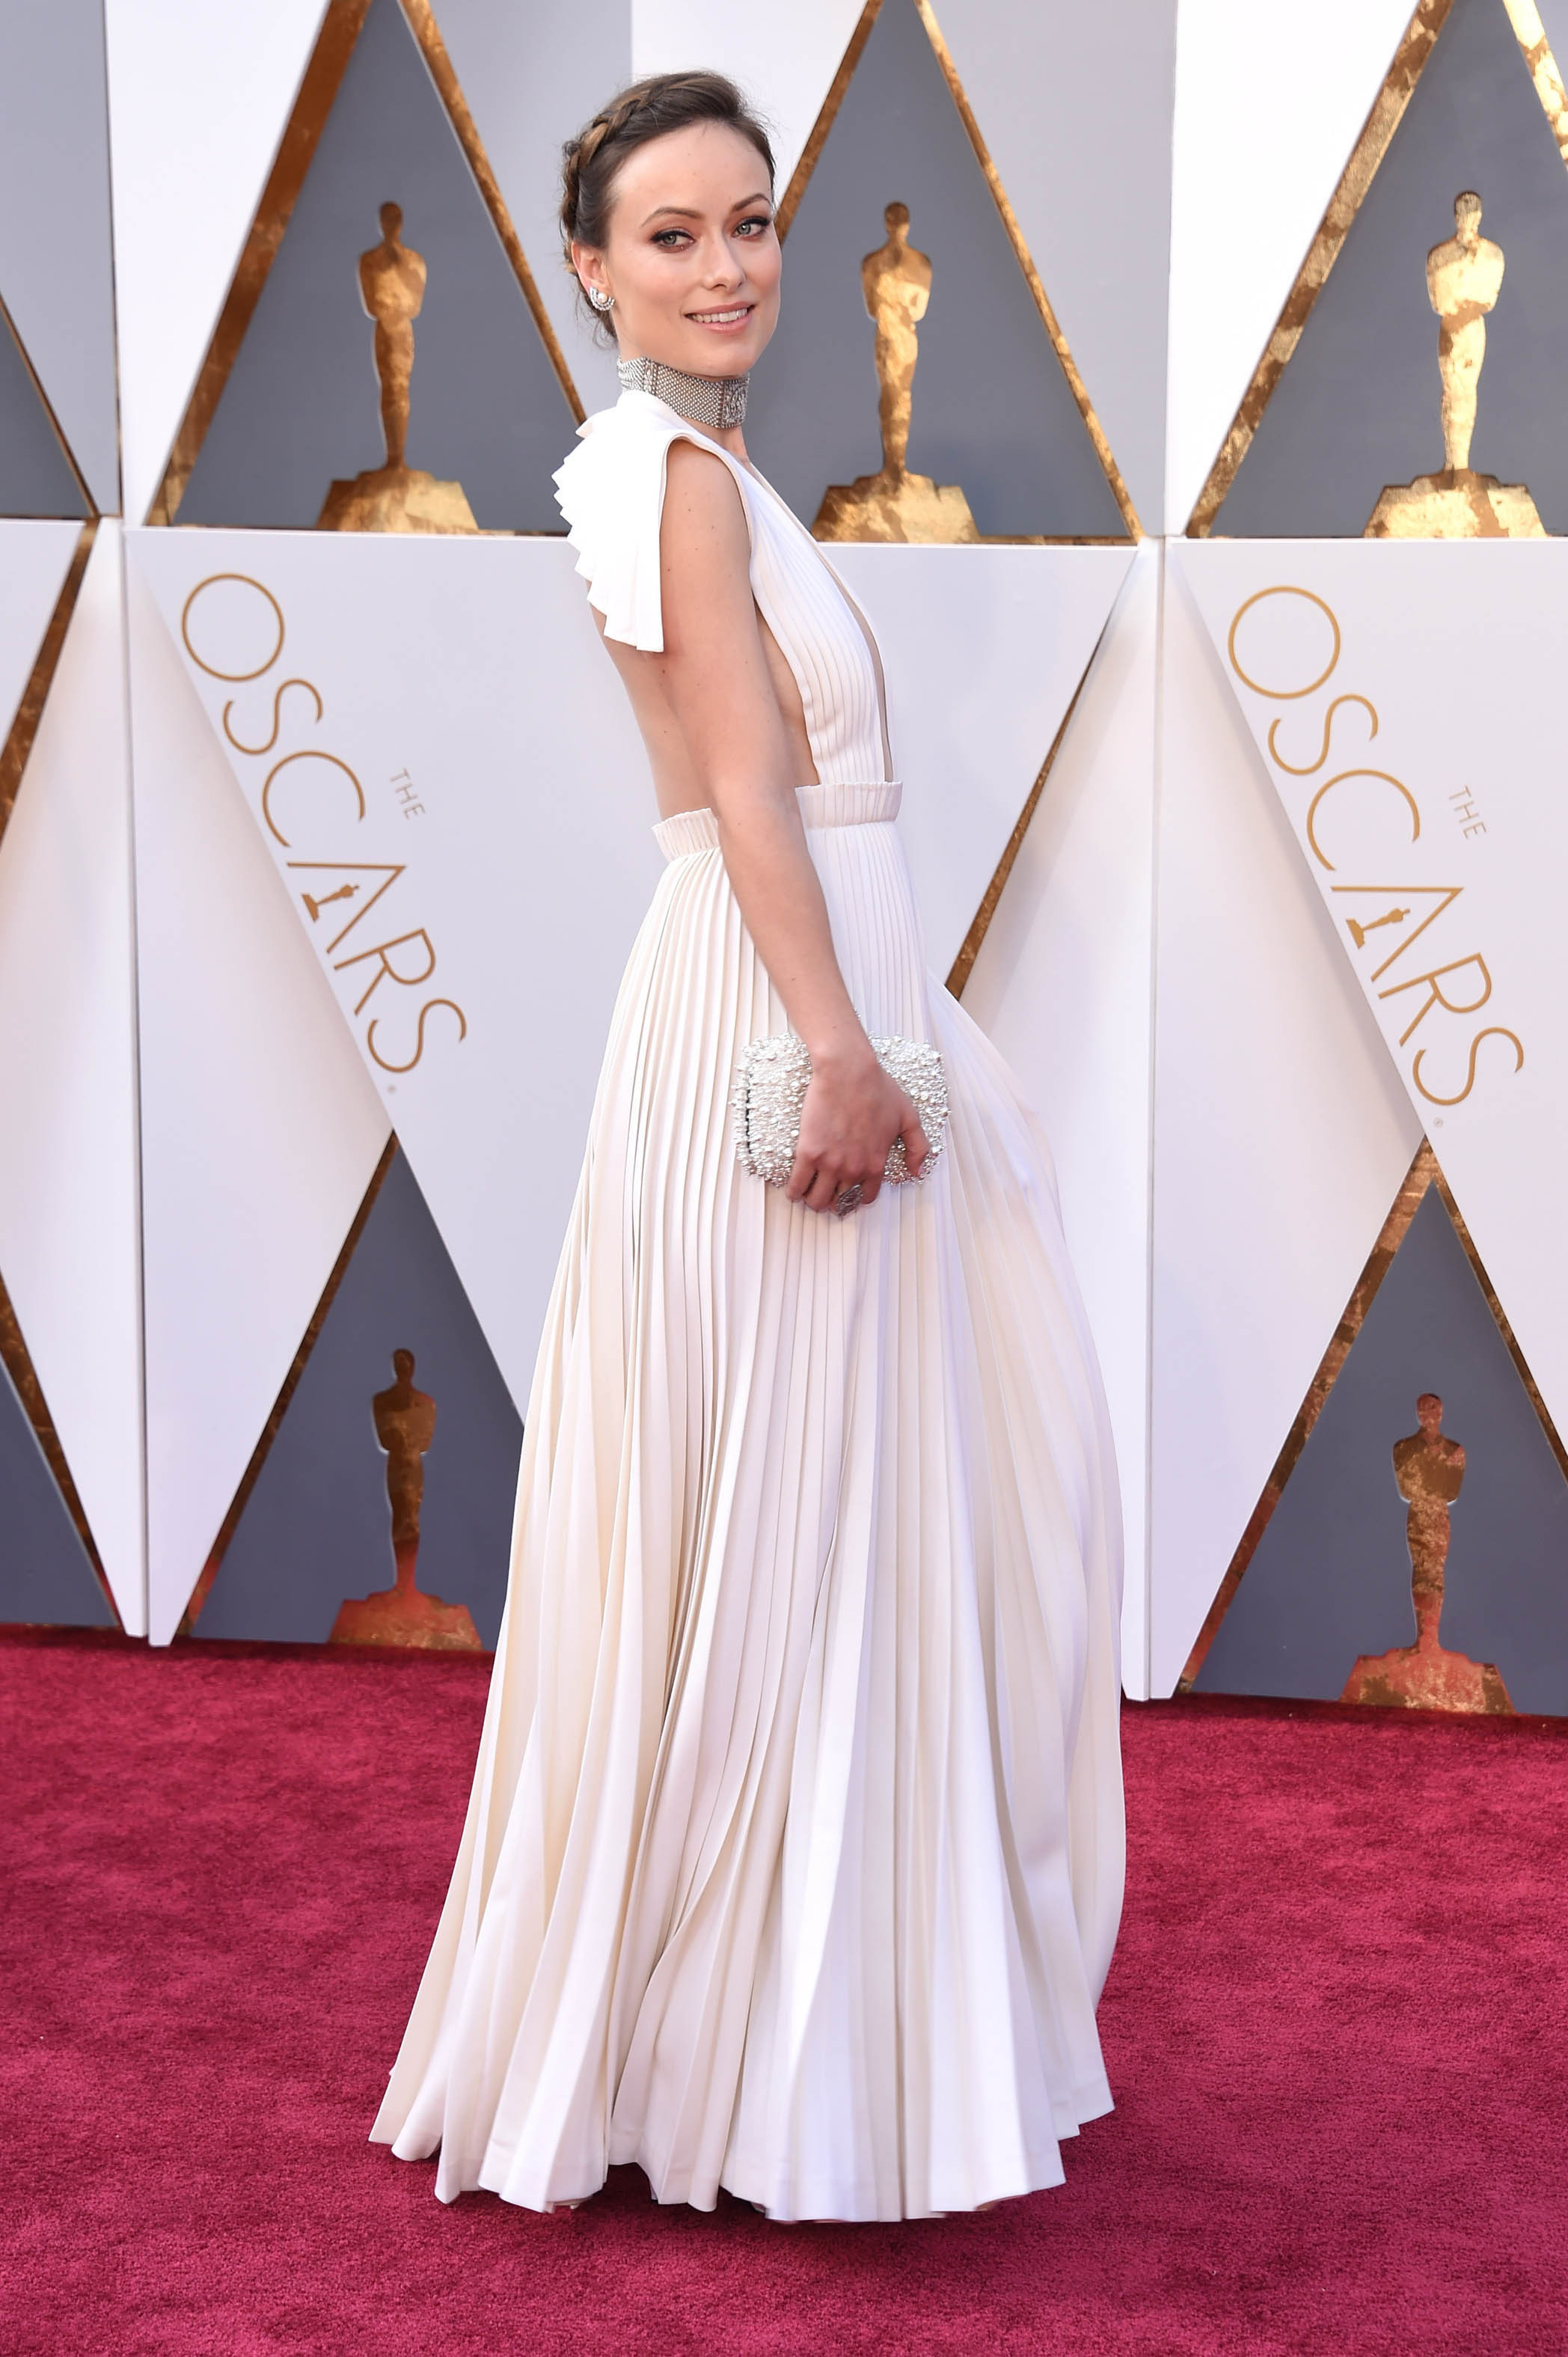 Photo by: KGC-11/starmaxinc.com STAR MAX Copyright 2016 ALL RIGHTS RESERVED Telephone/Fax: (212) 995-1196 2/28/16 Olivia Wilde at the 88th Annual Academy Awards (Oscars). (Hollywood, CA, USA)